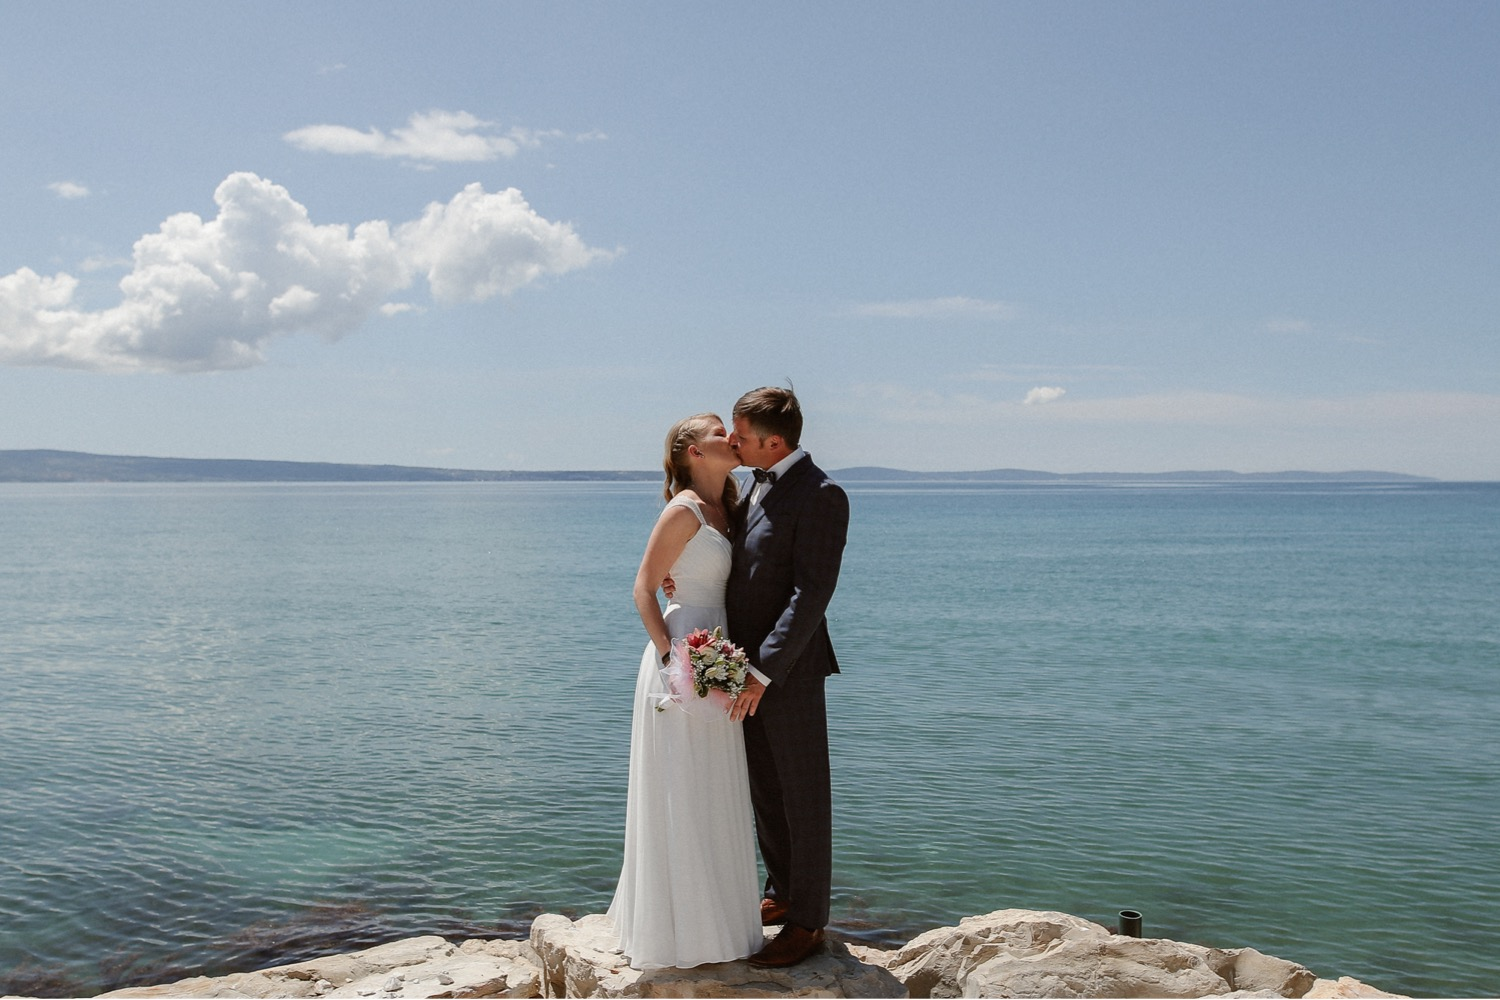 Croatia beach elopement hilke thomas love and ventures photography 02 | Croatia Elopement Photographer and Videographer